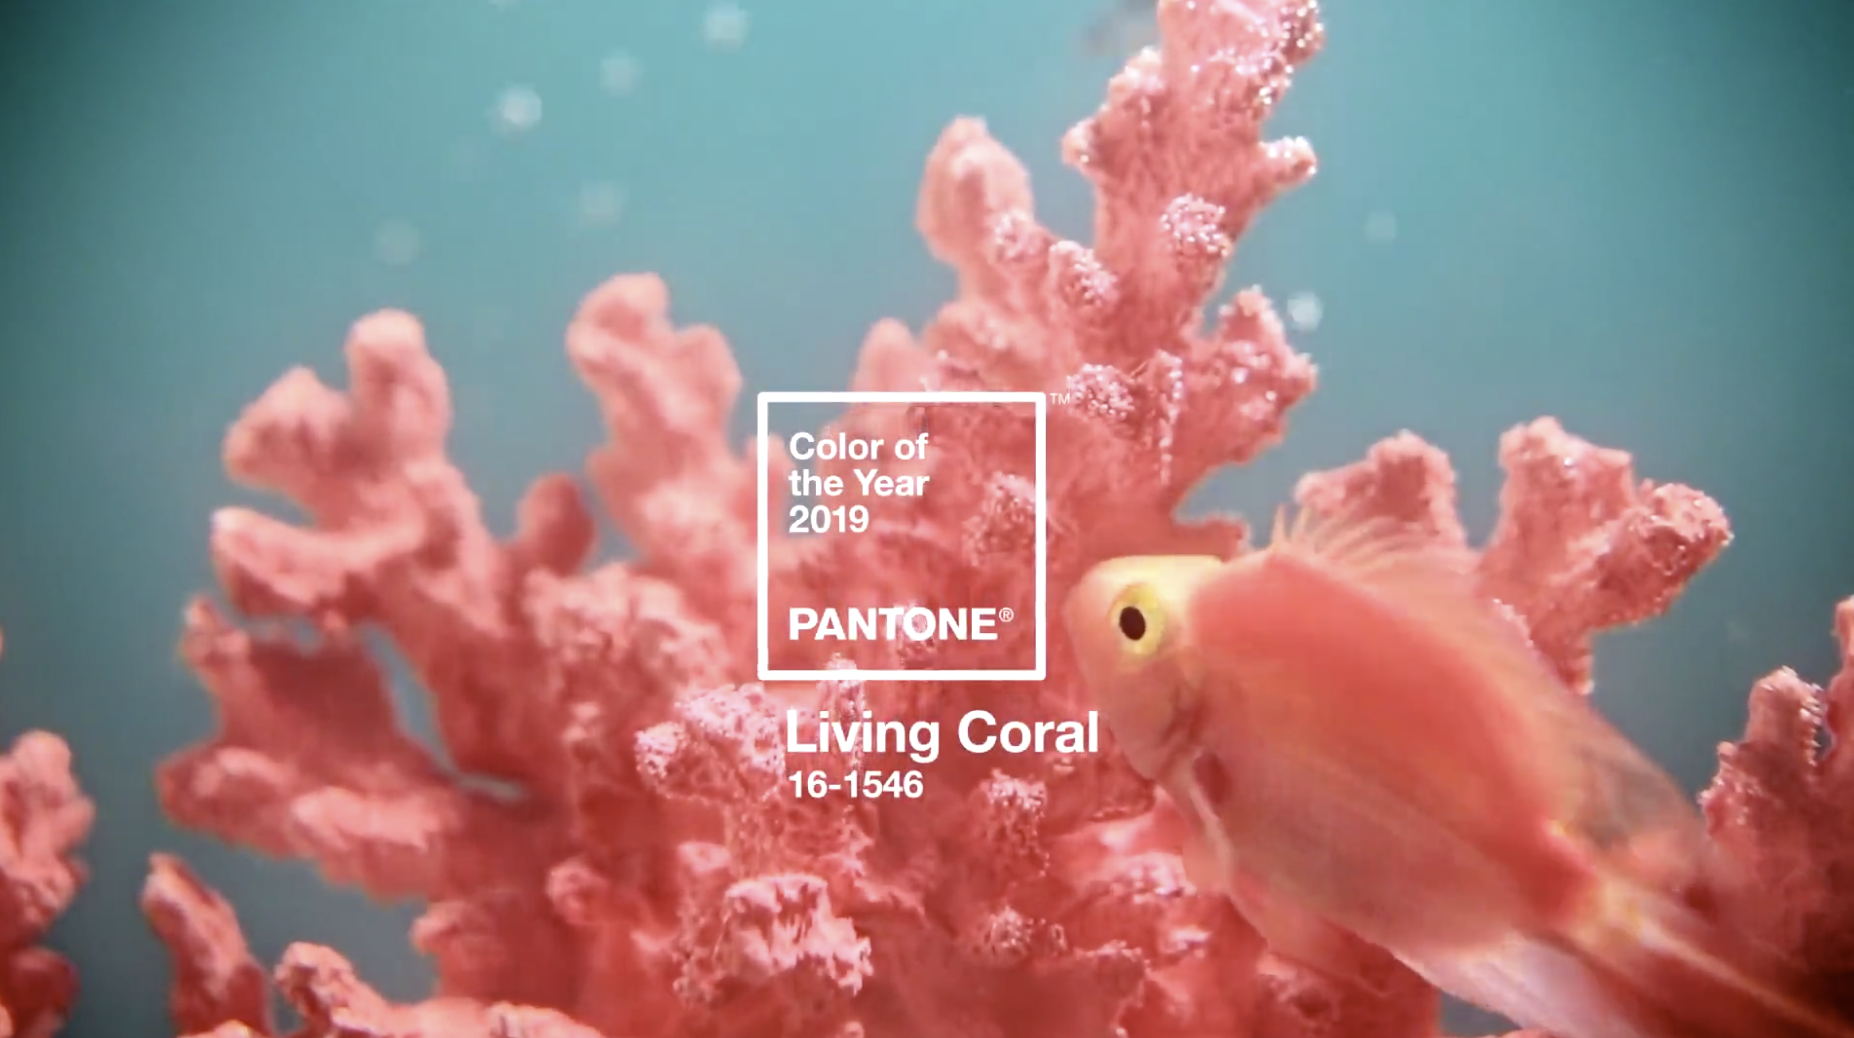 Screenshot 2018-12-06 at 16.33.35.png